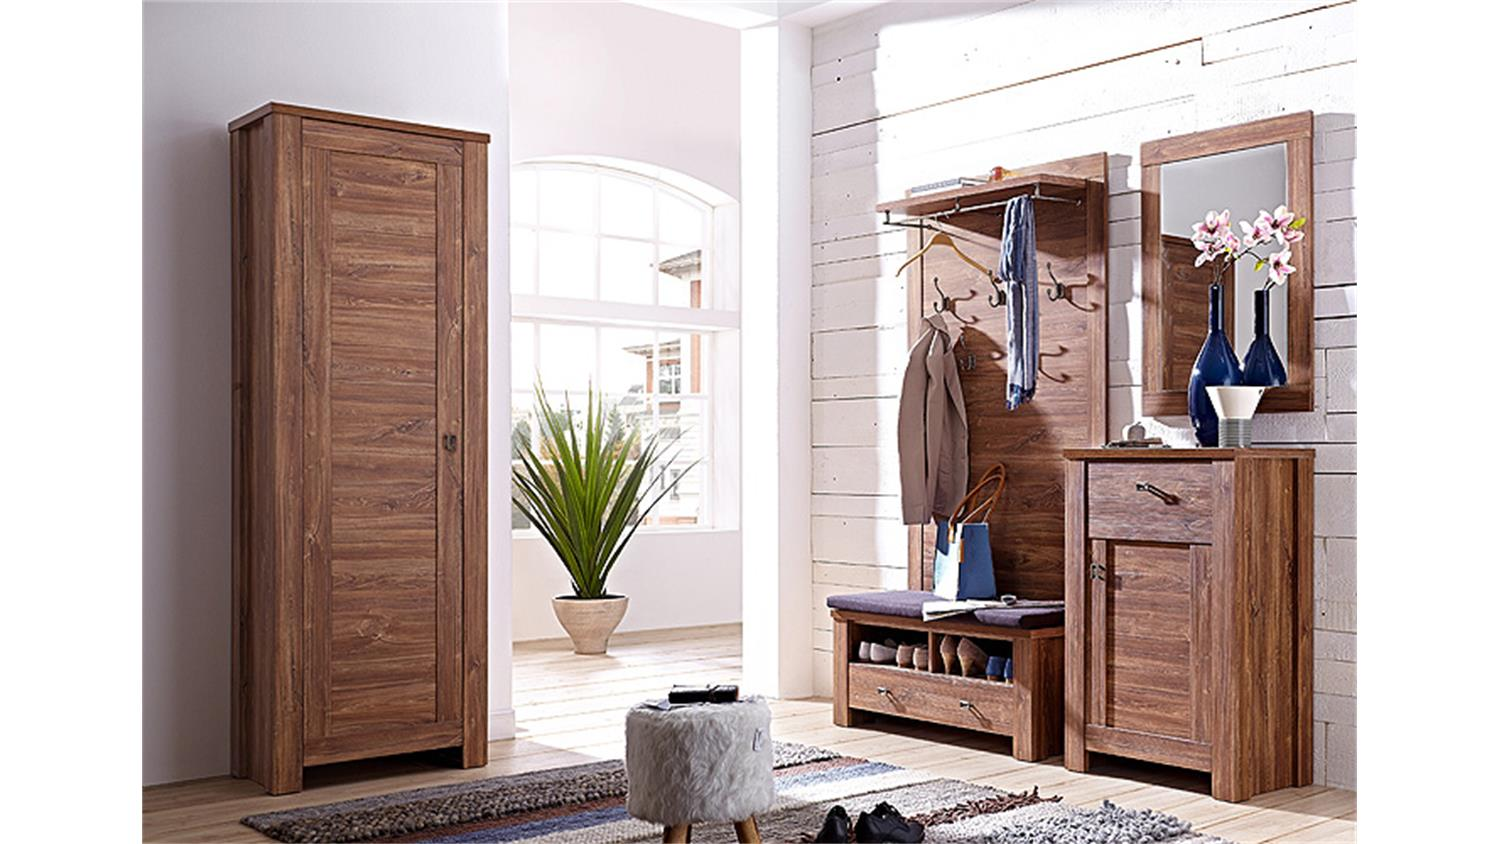 garderobe mit schrank germania hochglanz garderobe schrank flur mit schiebet r garderobe mit. Black Bedroom Furniture Sets. Home Design Ideas